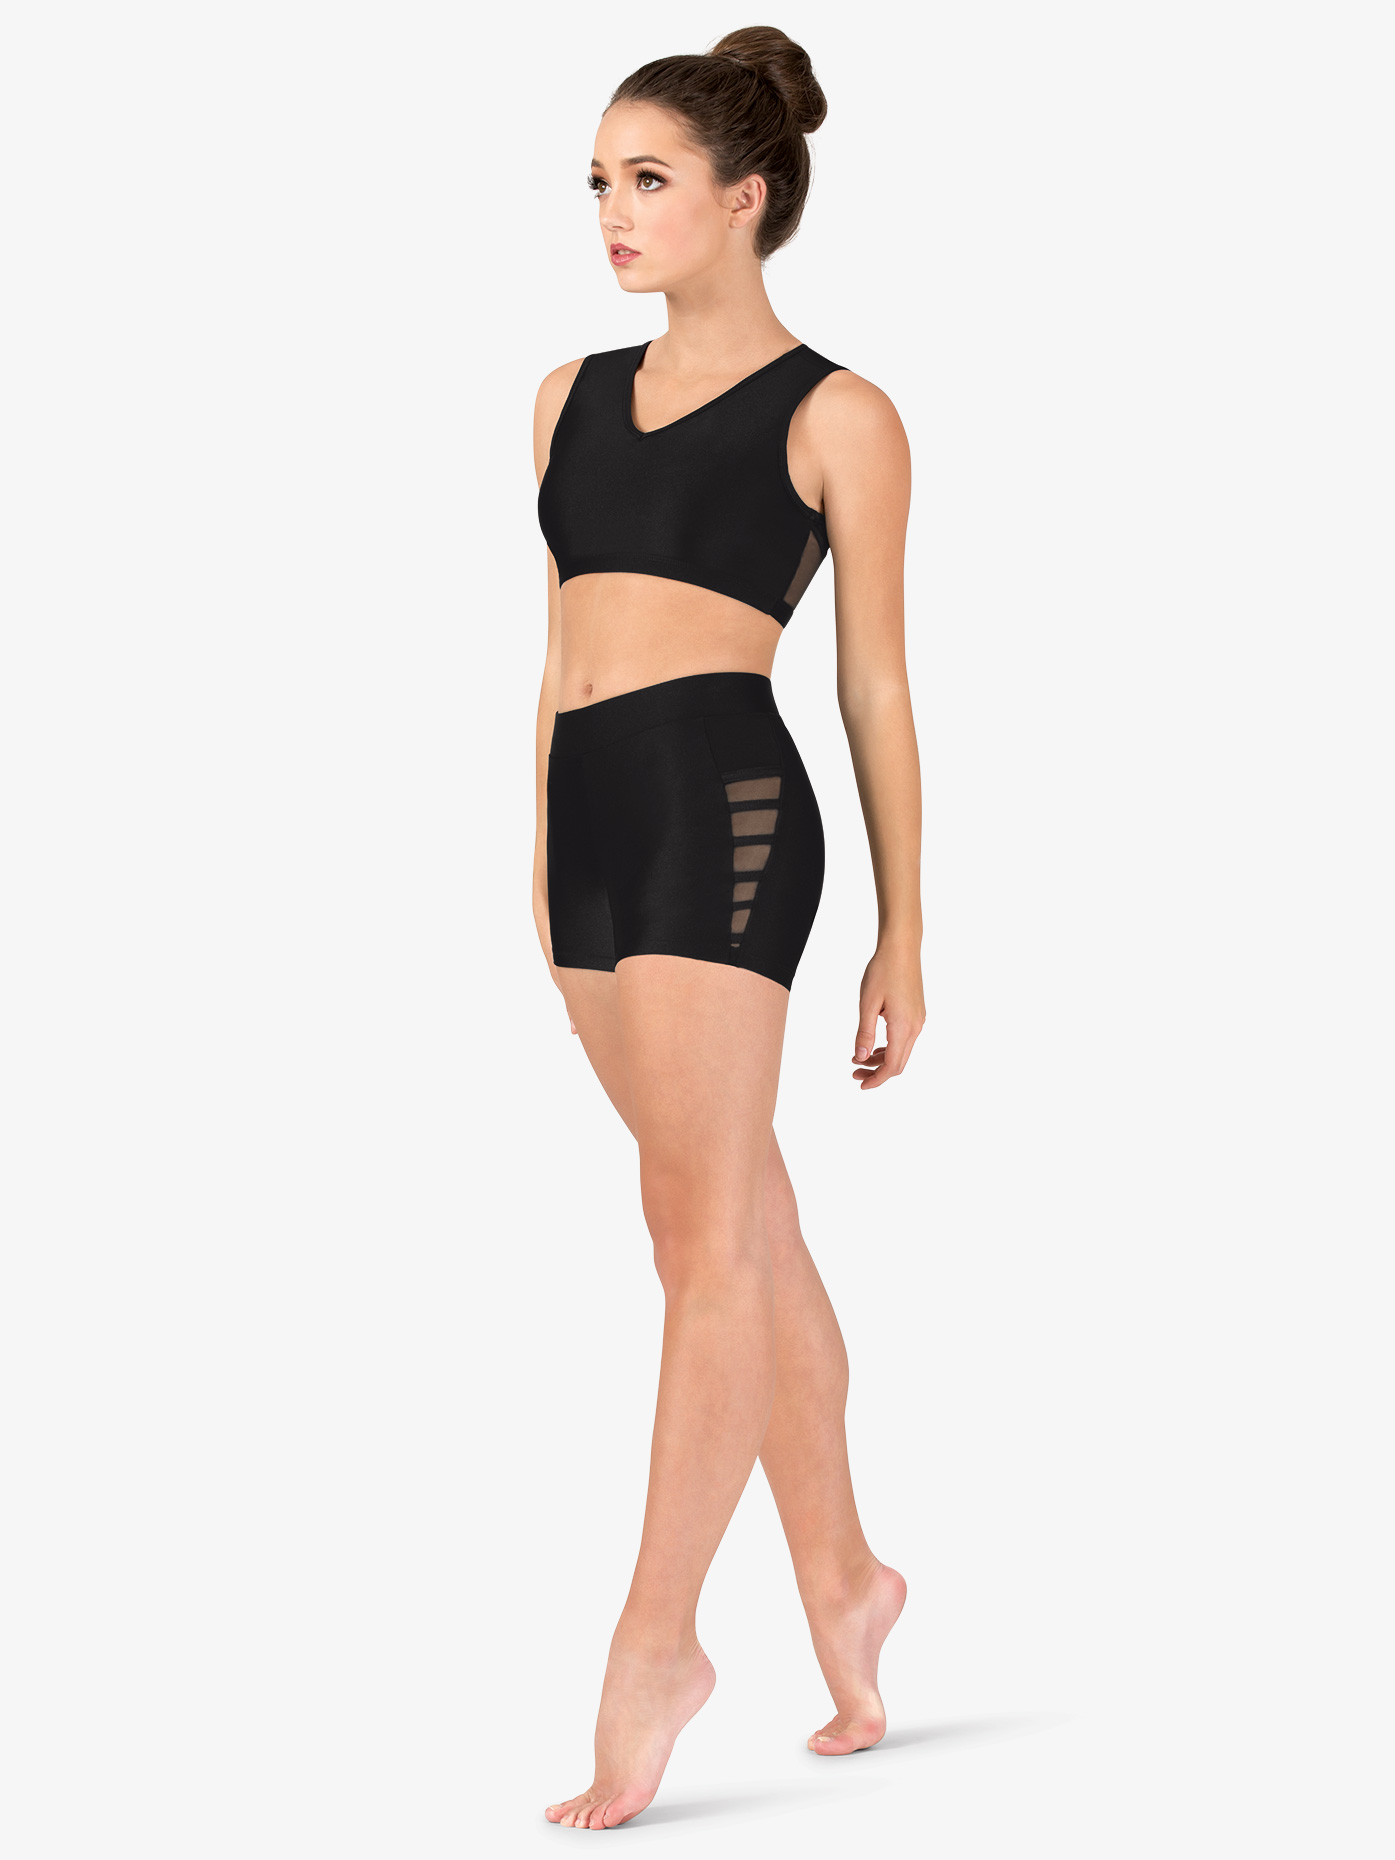 Natalie Couture Womens Mesh Binding Side Detail Dance Shorts NC8913